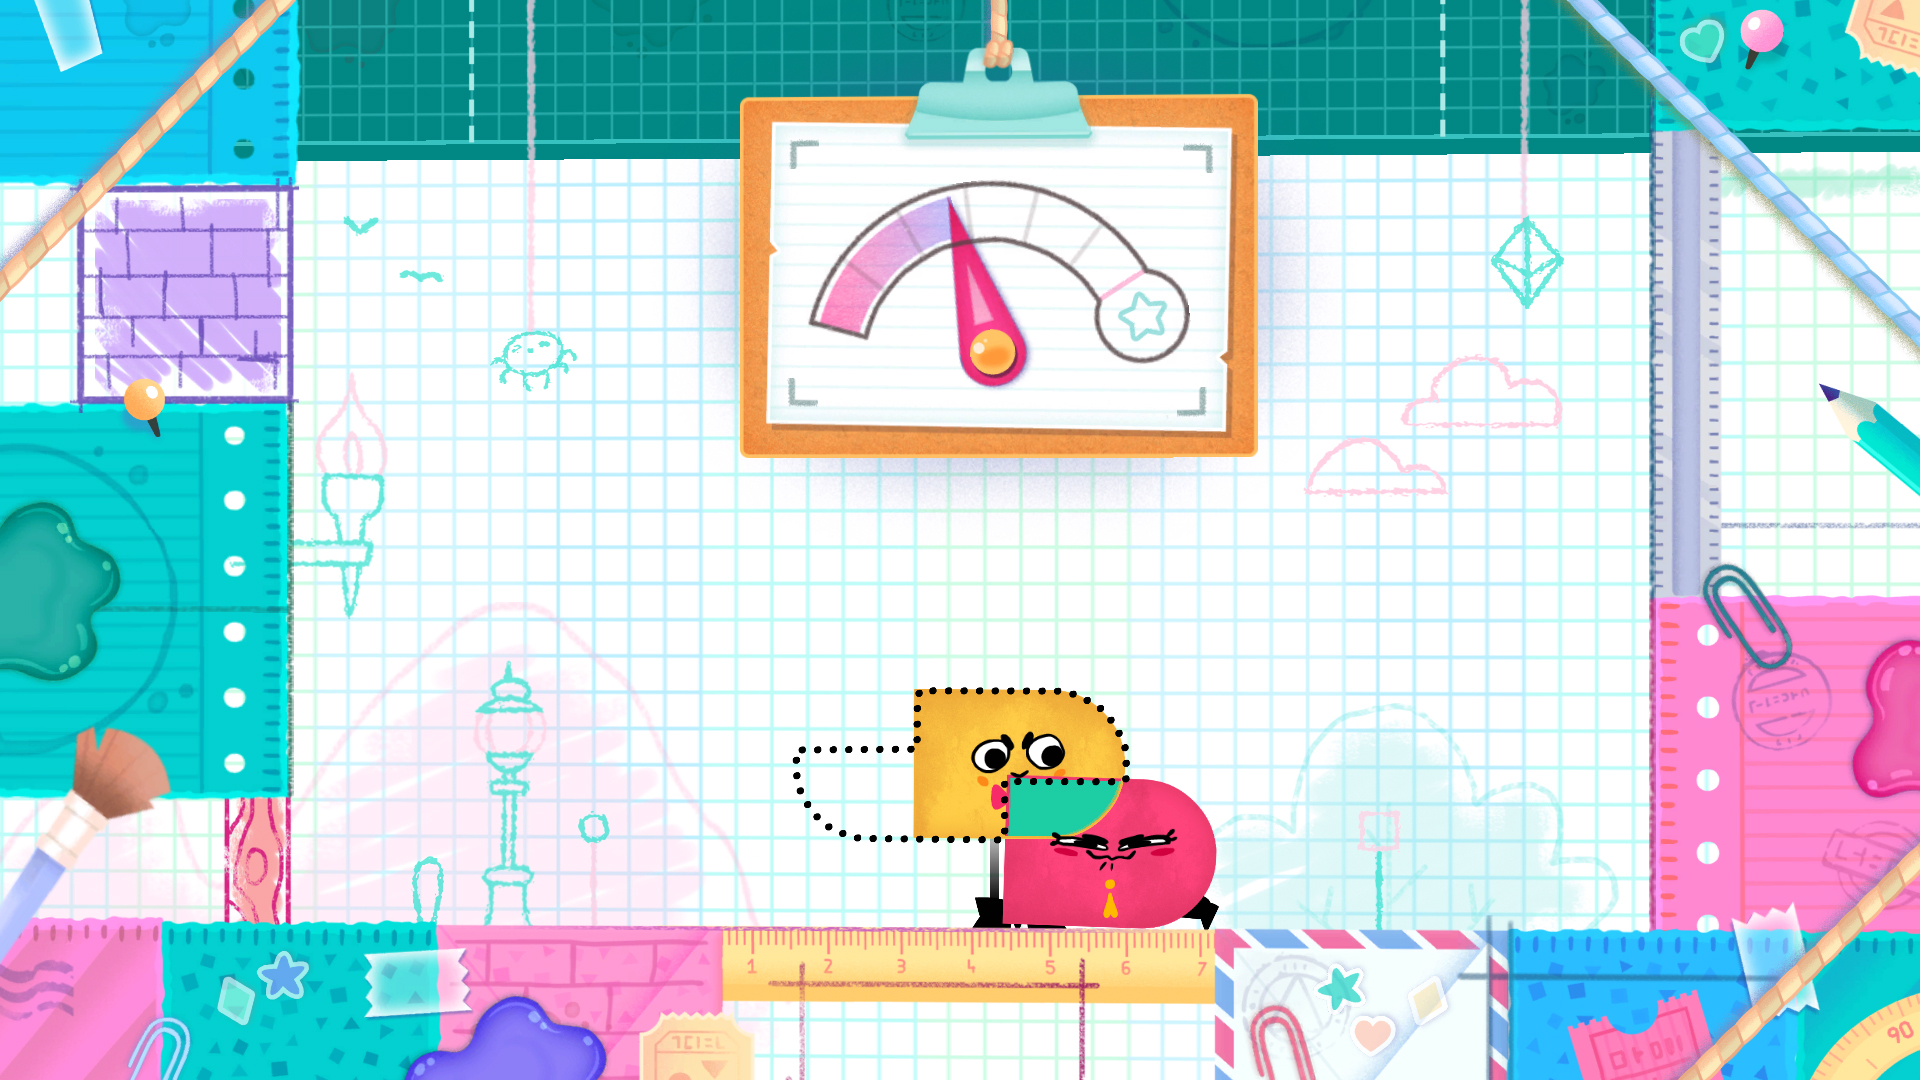 Snipperclips-Cut-It-Out-Together_2017_01-13-17_001